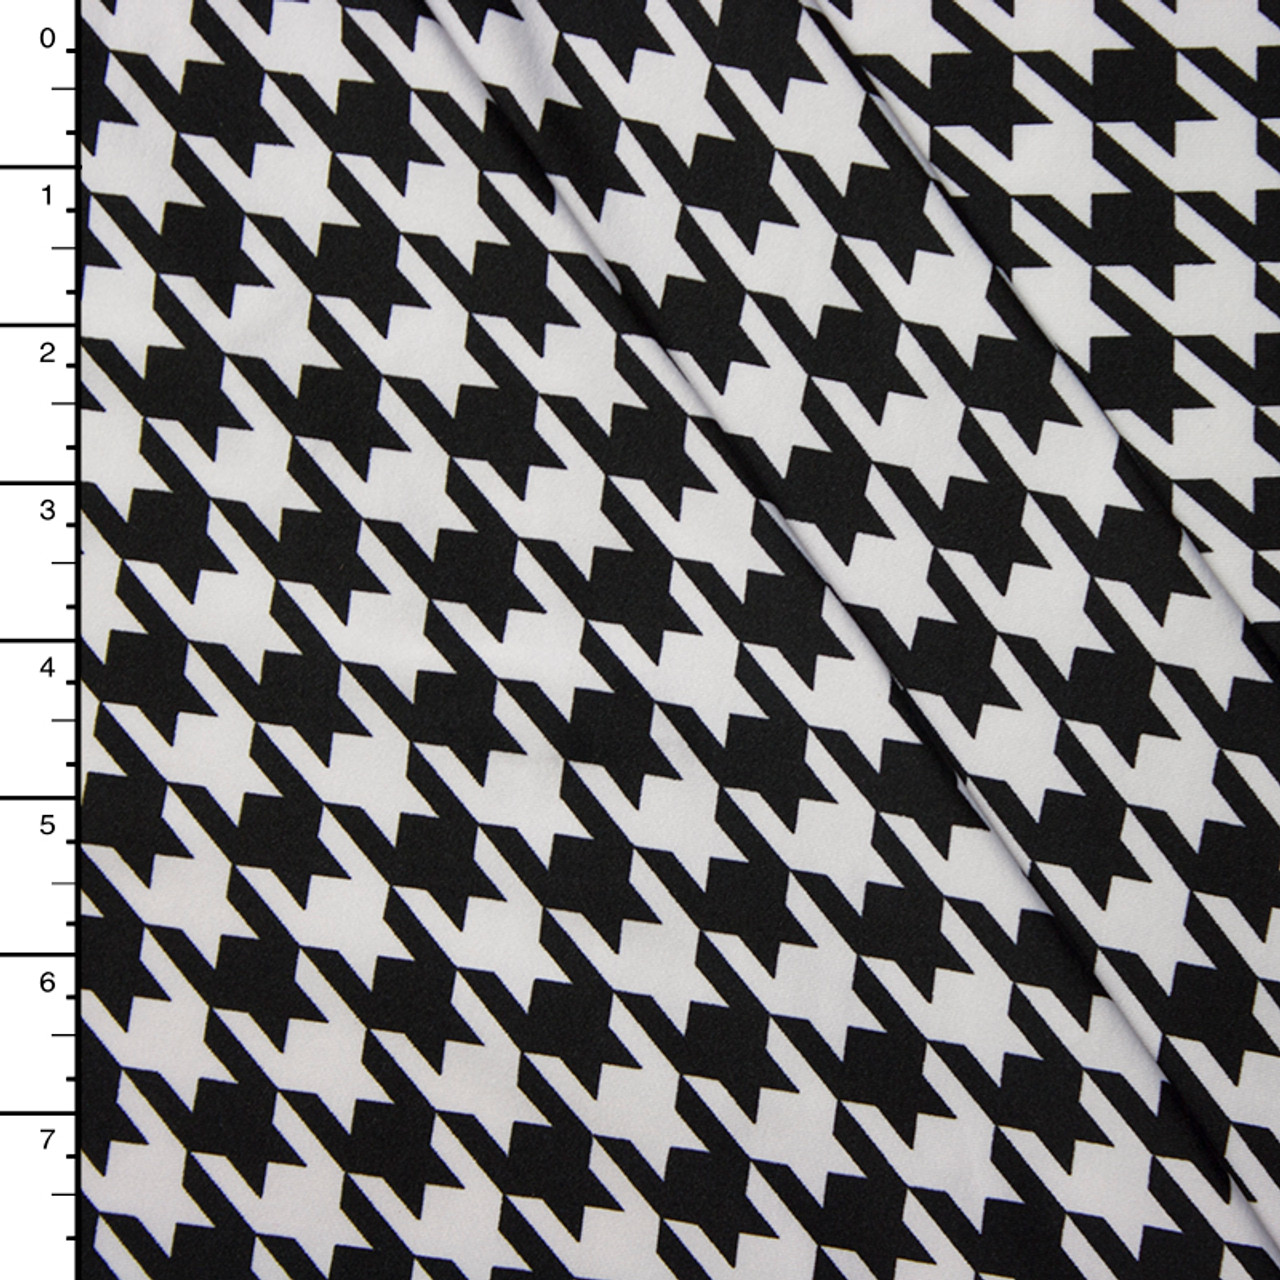 Cali Fabrics Black And White Houndstooth 4 Way Stretch Poly Lycra